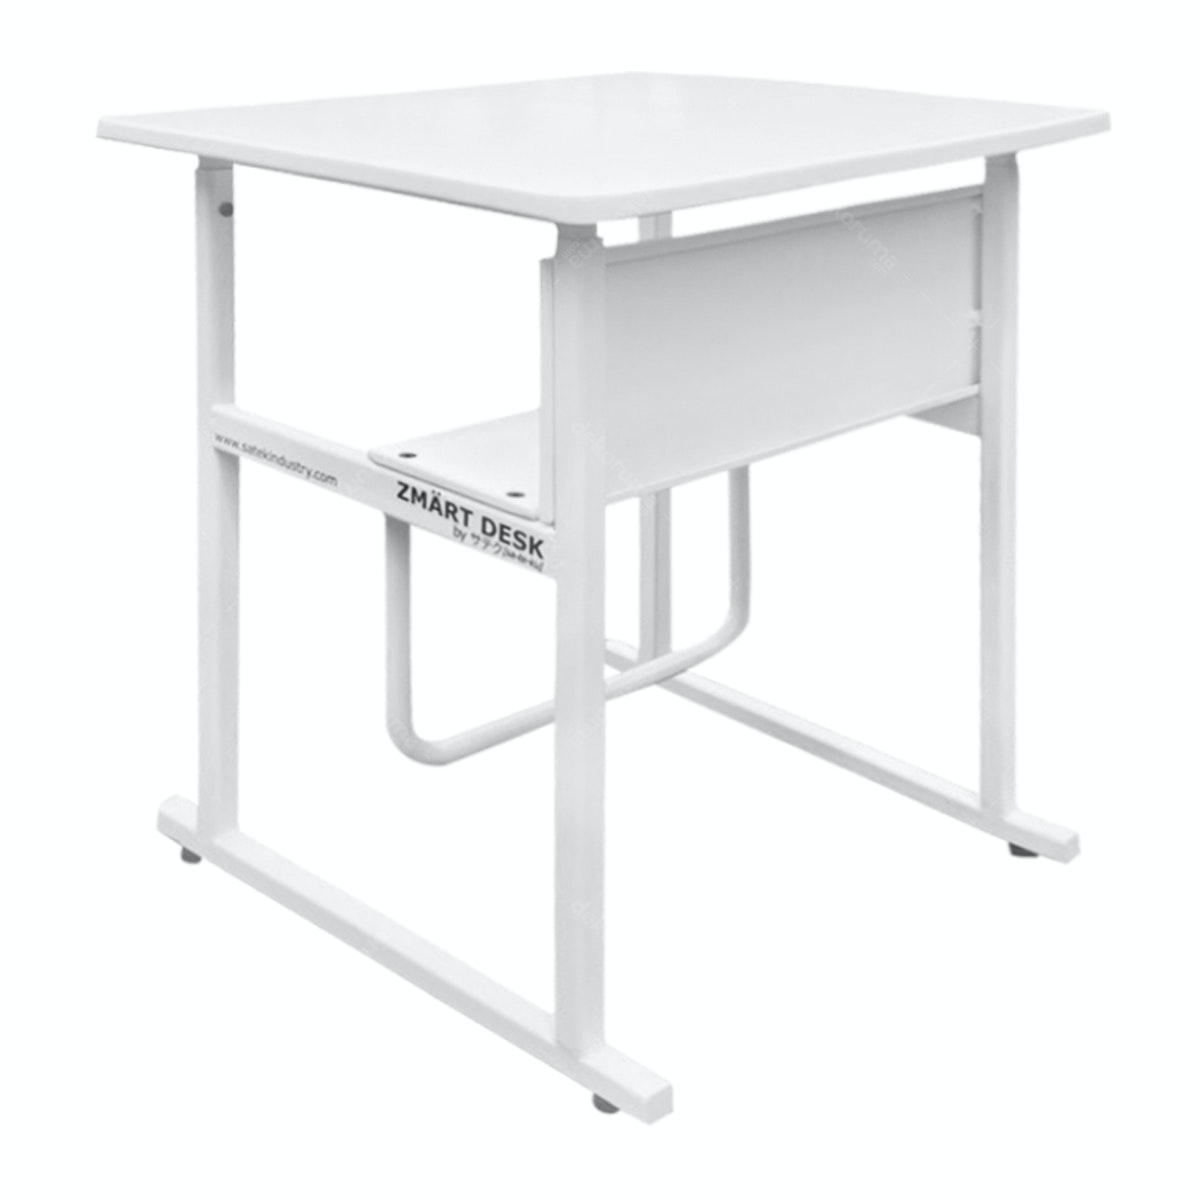 Zmart Desk Kinesthetic Standing-Sitting Desk Putih